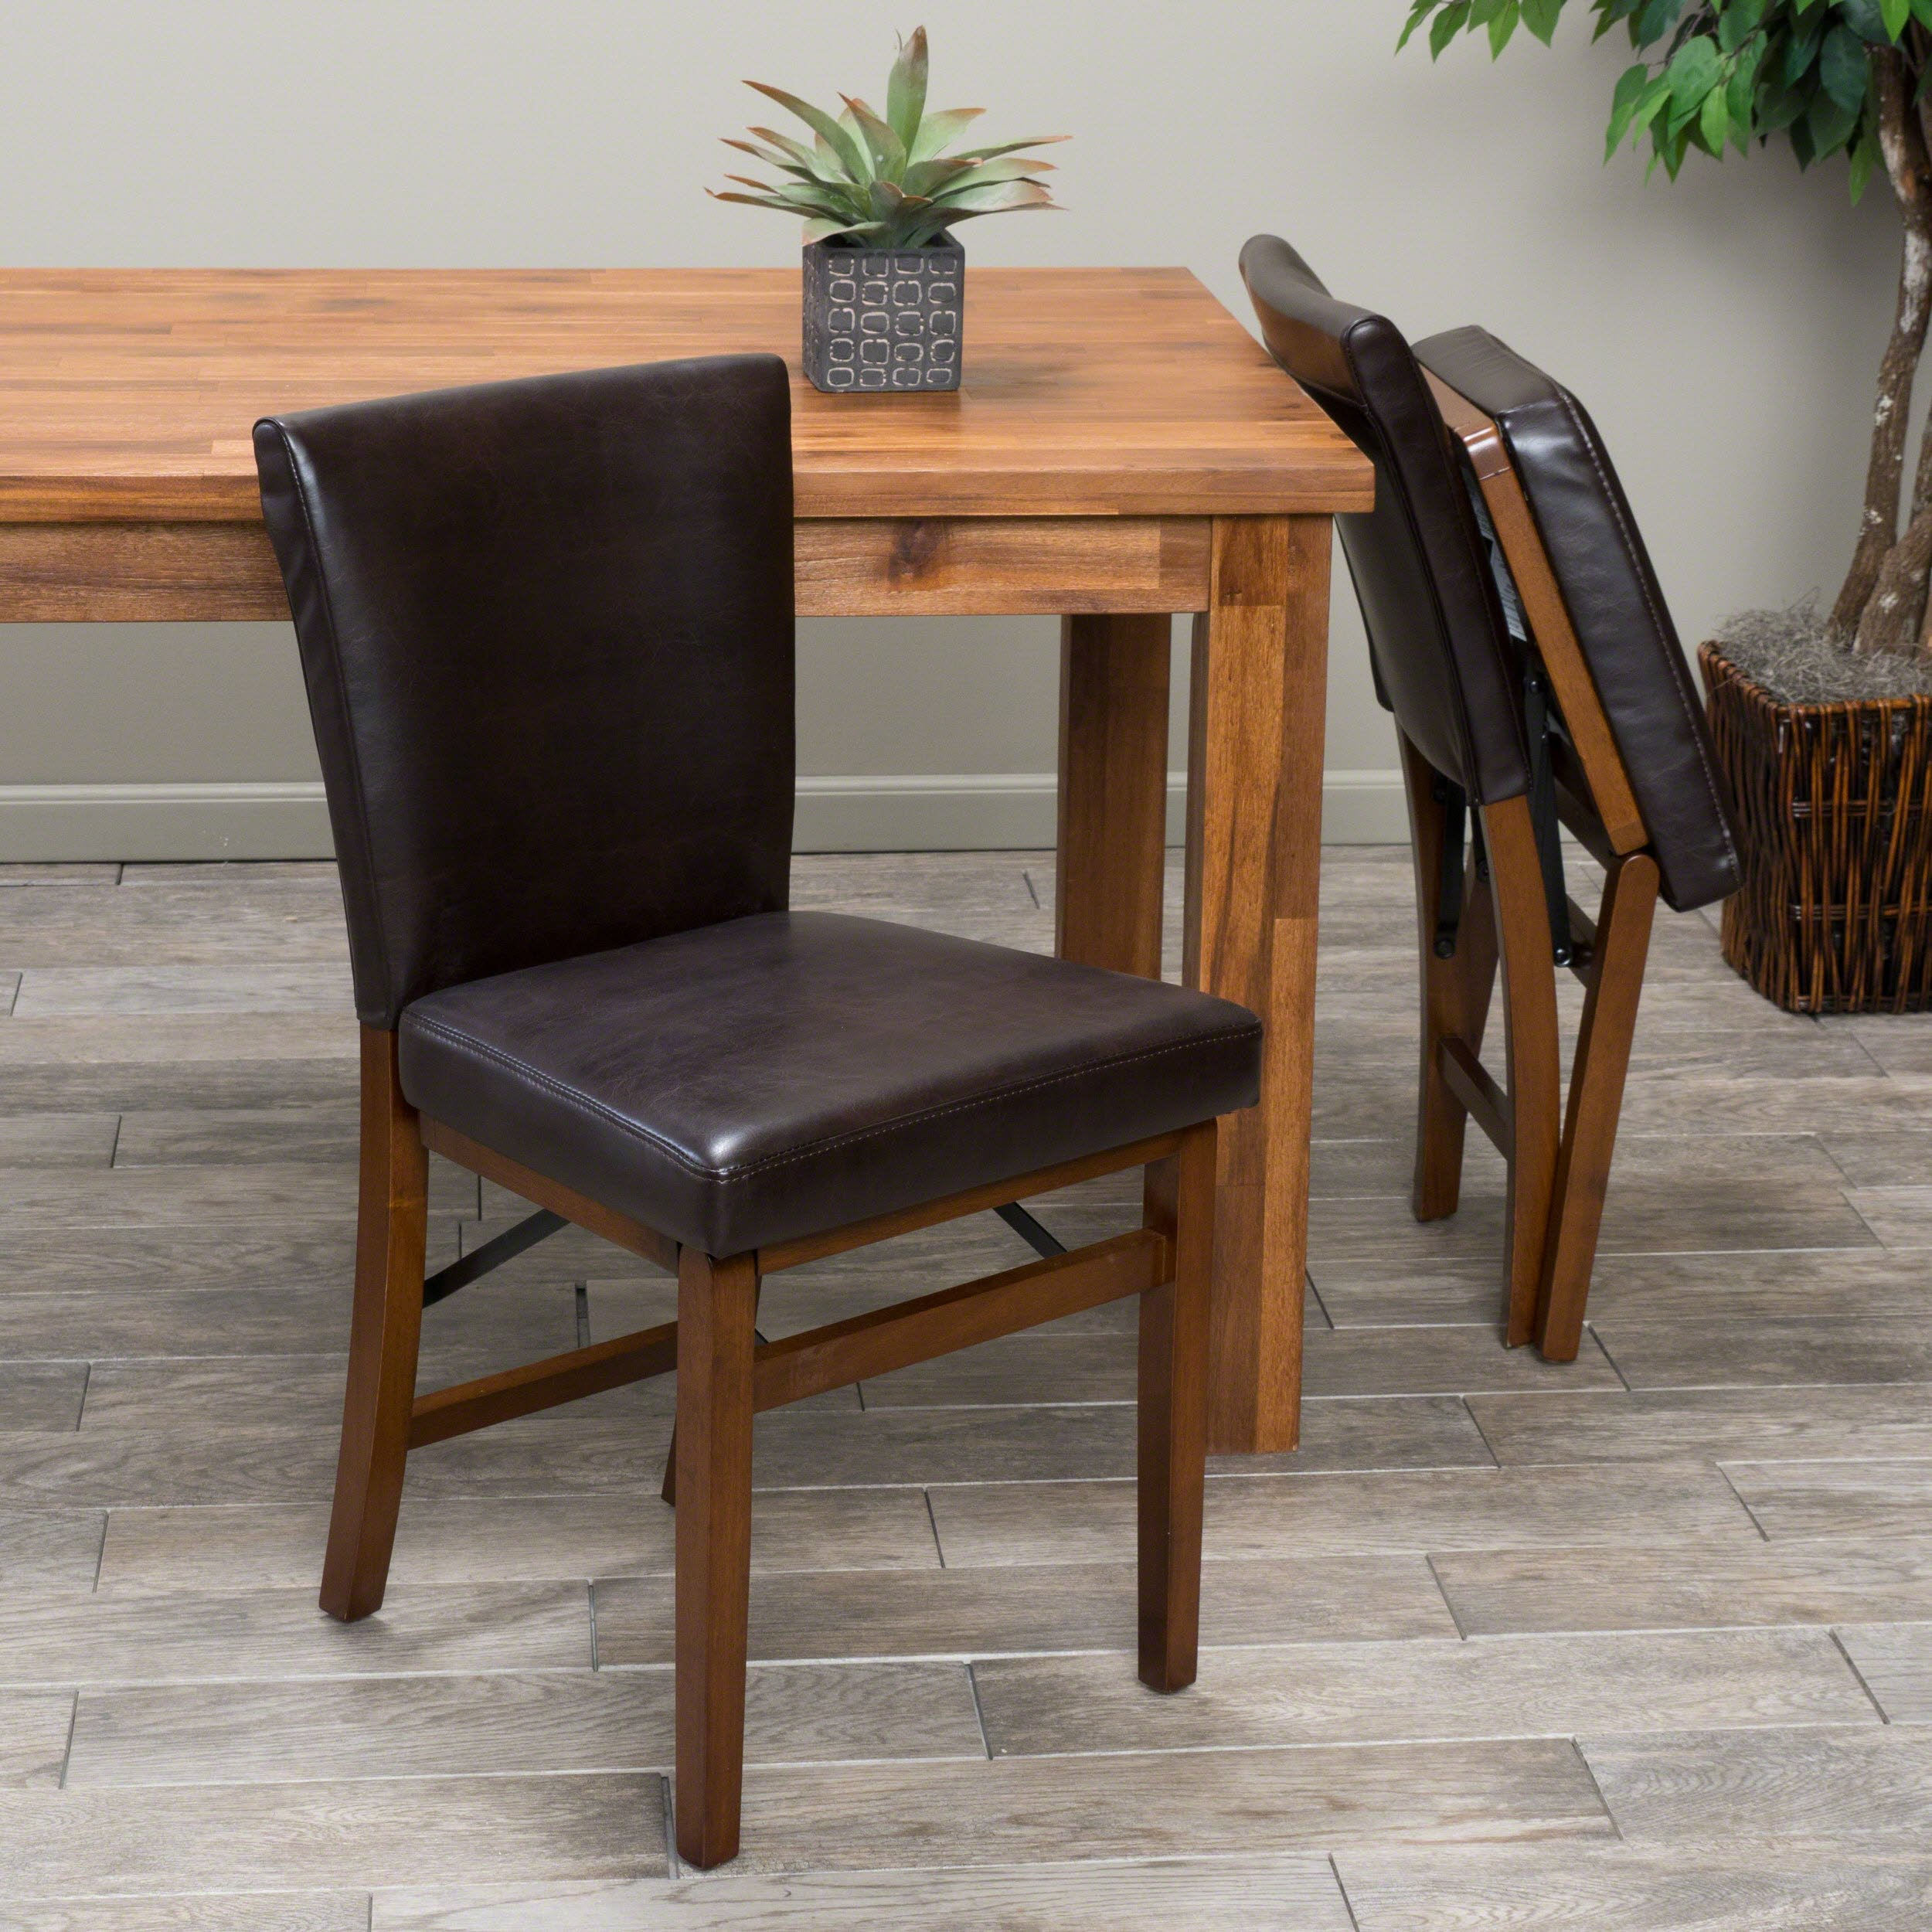 Christopher Knight Home Lane Folding Chair, Brown by Christopher Knight Home